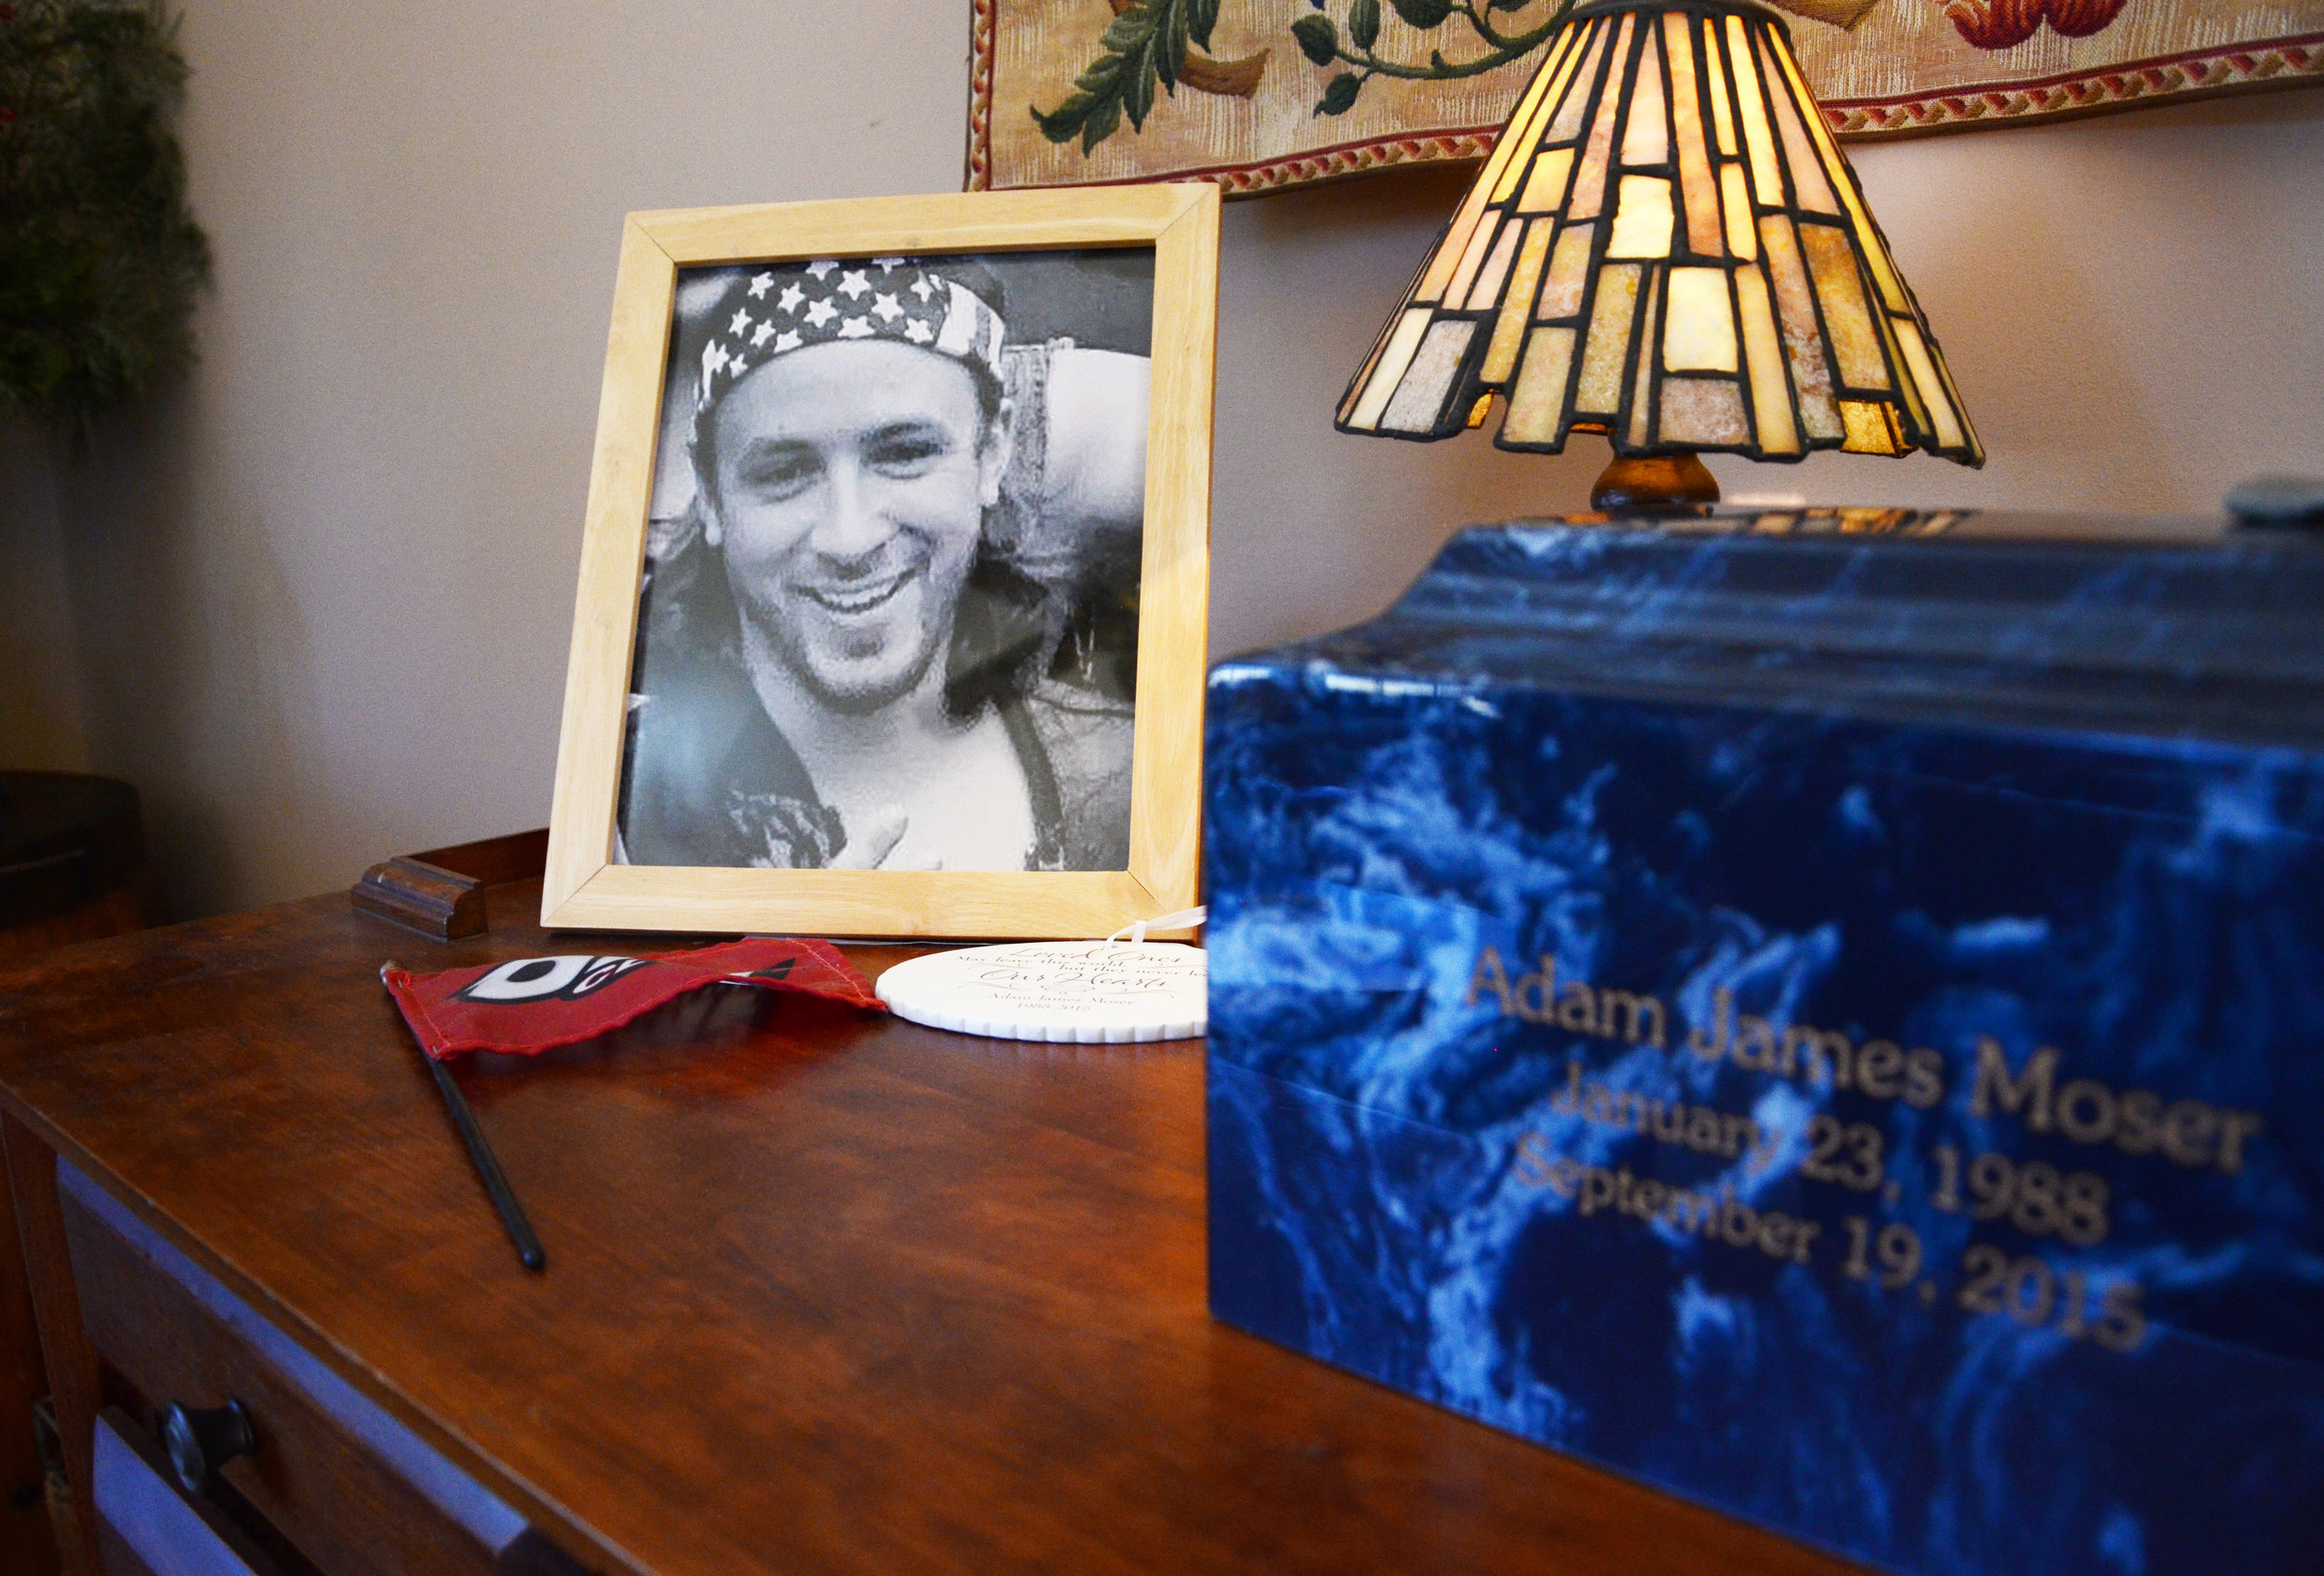 Adam Moser's death has spurred his parents to speak out about the dangers of prescription drug abuse.(Casey McDermott/NHPR)